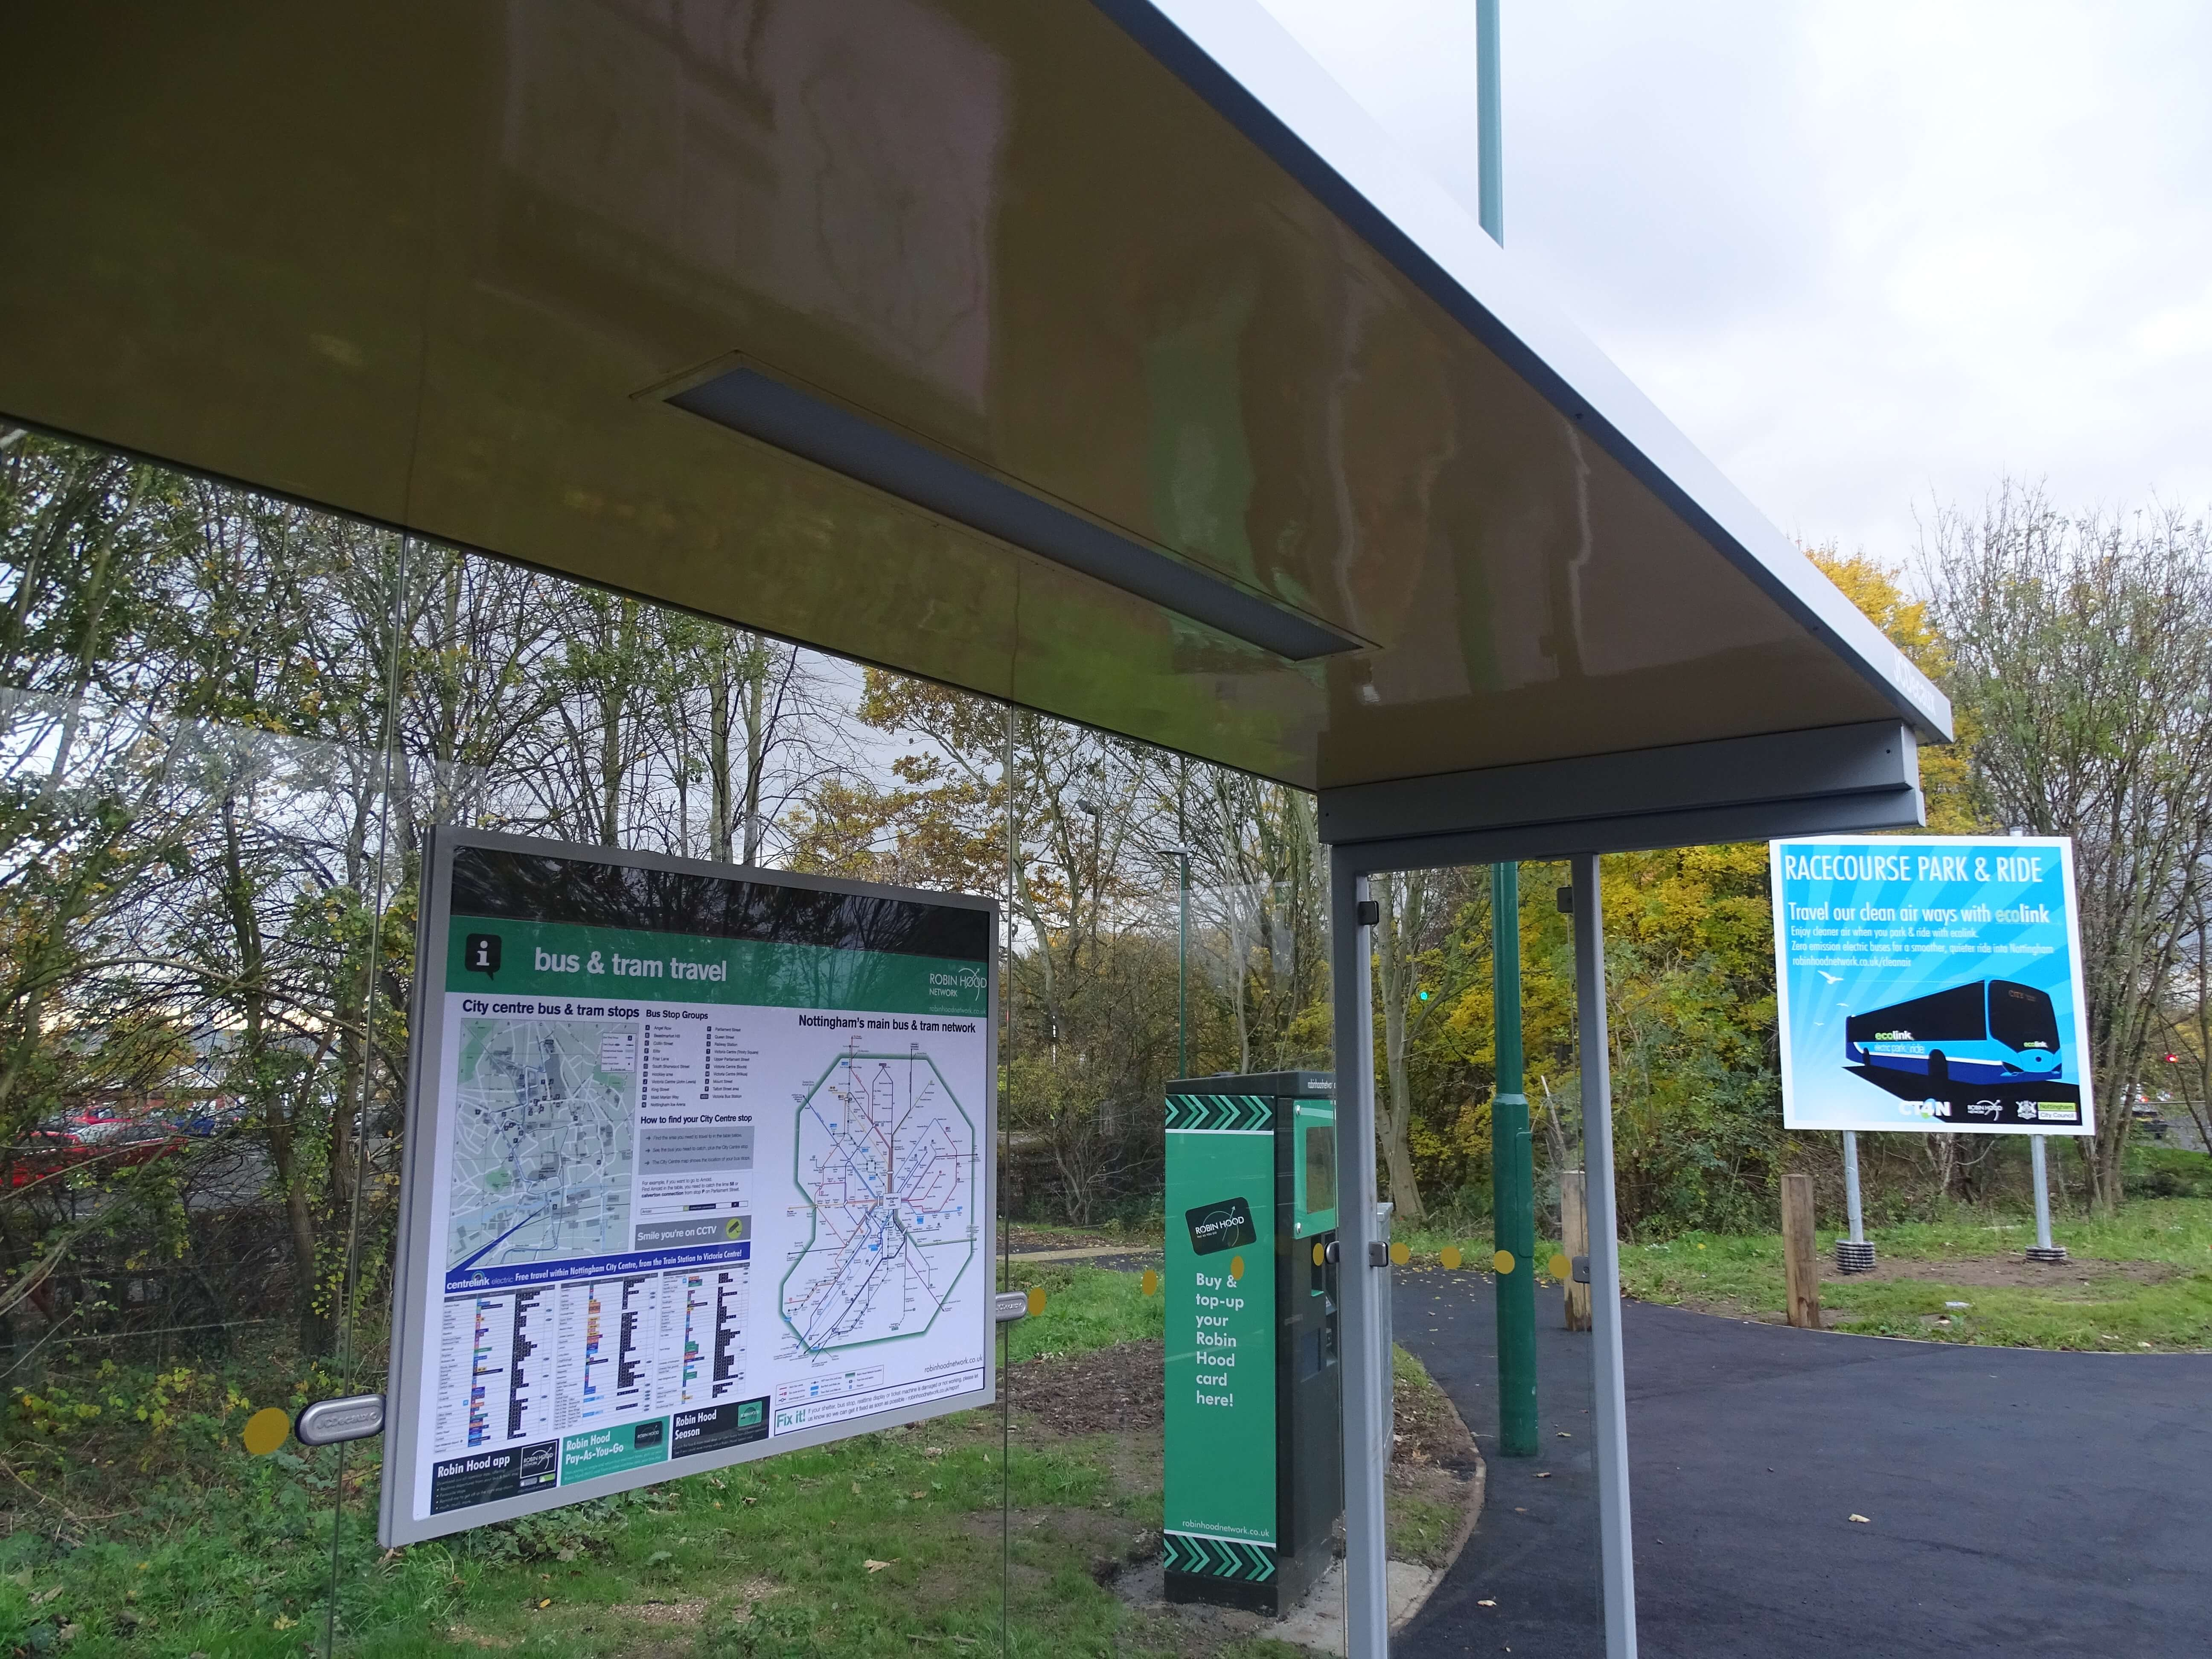 New bus stop at Colwick Park & Ride